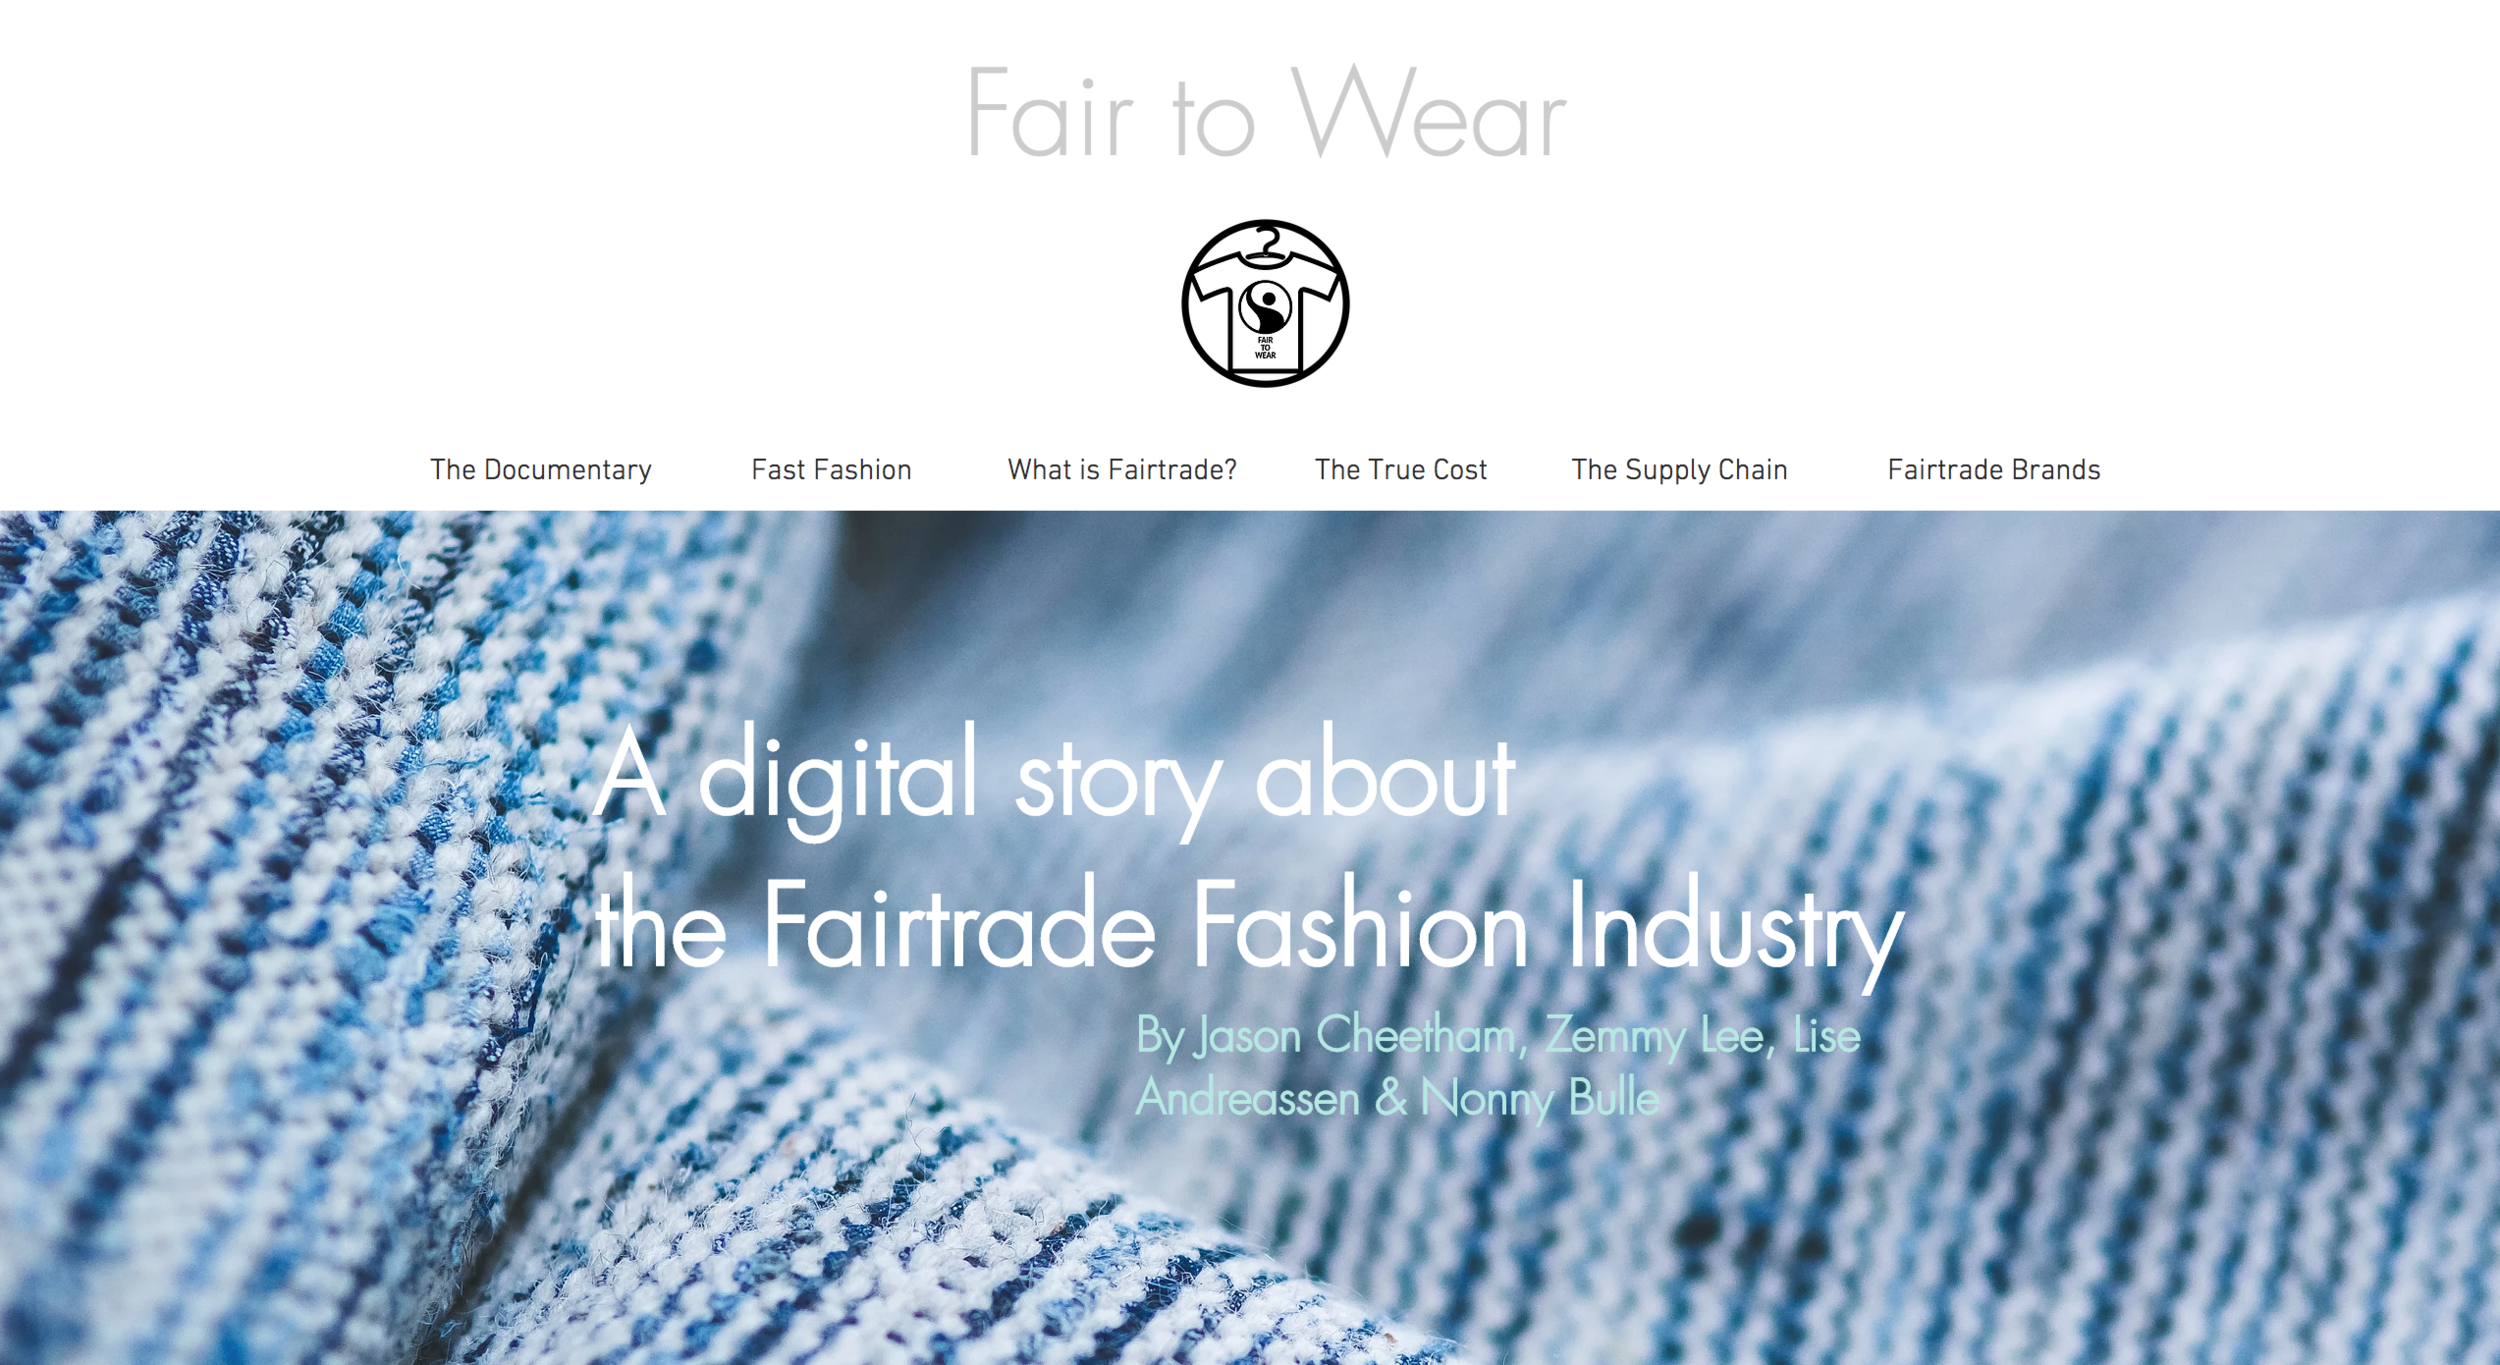 FAIR TO WEAR: a digital story about the Fairtrade Fashion Industry